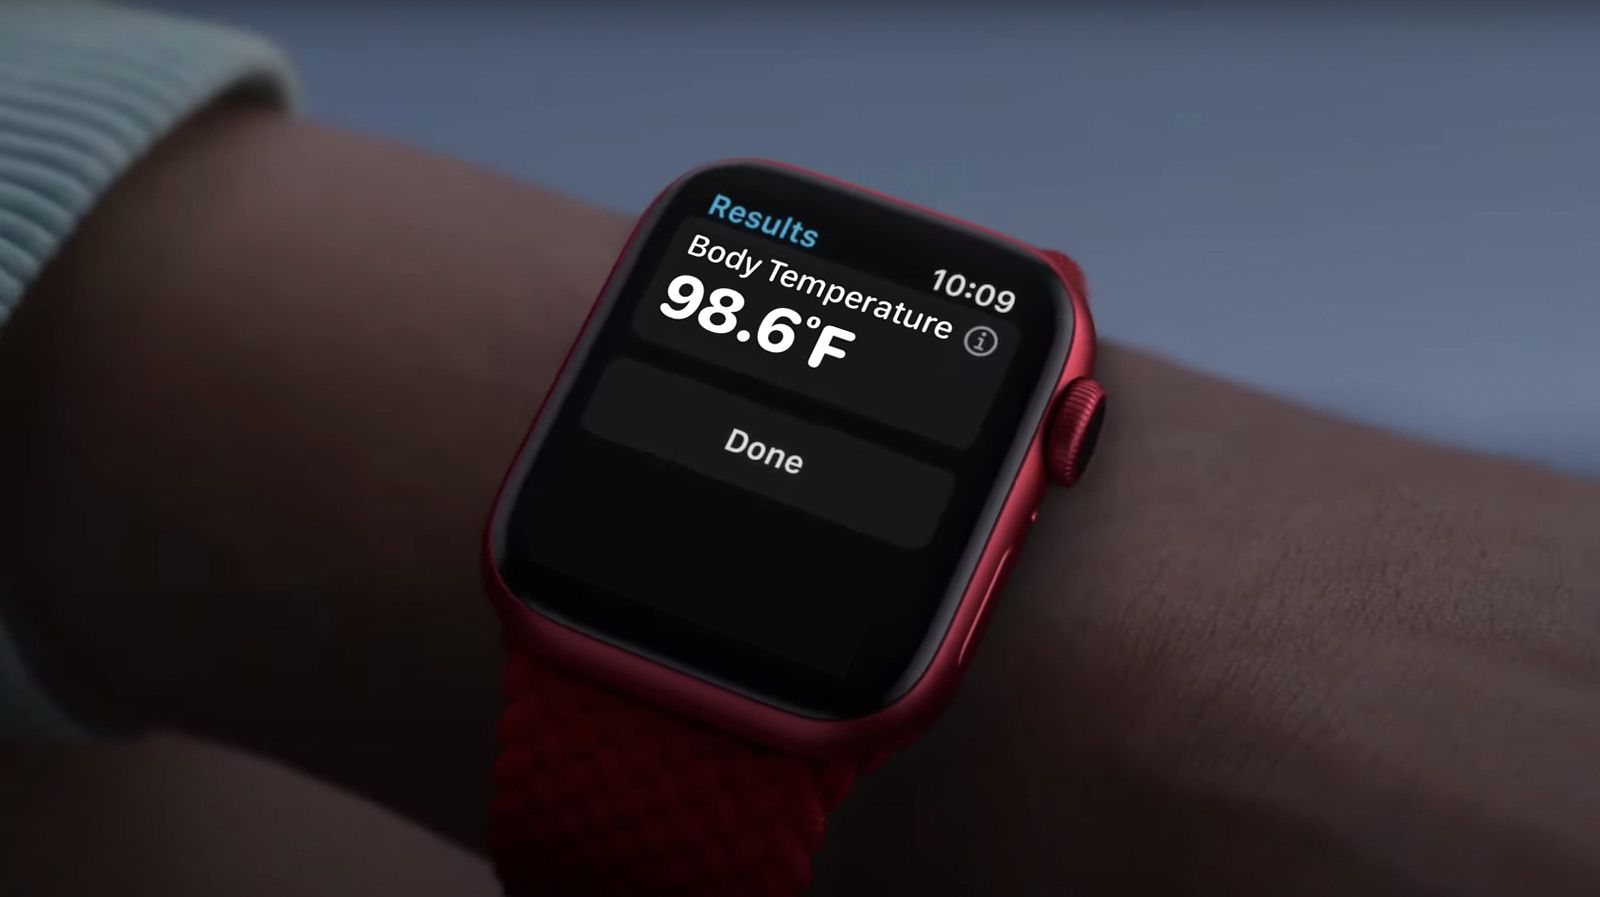 Kuo: Apple Watch Series 8 Will Take Your Temperature, Future AirPods to Help Manage Your Health